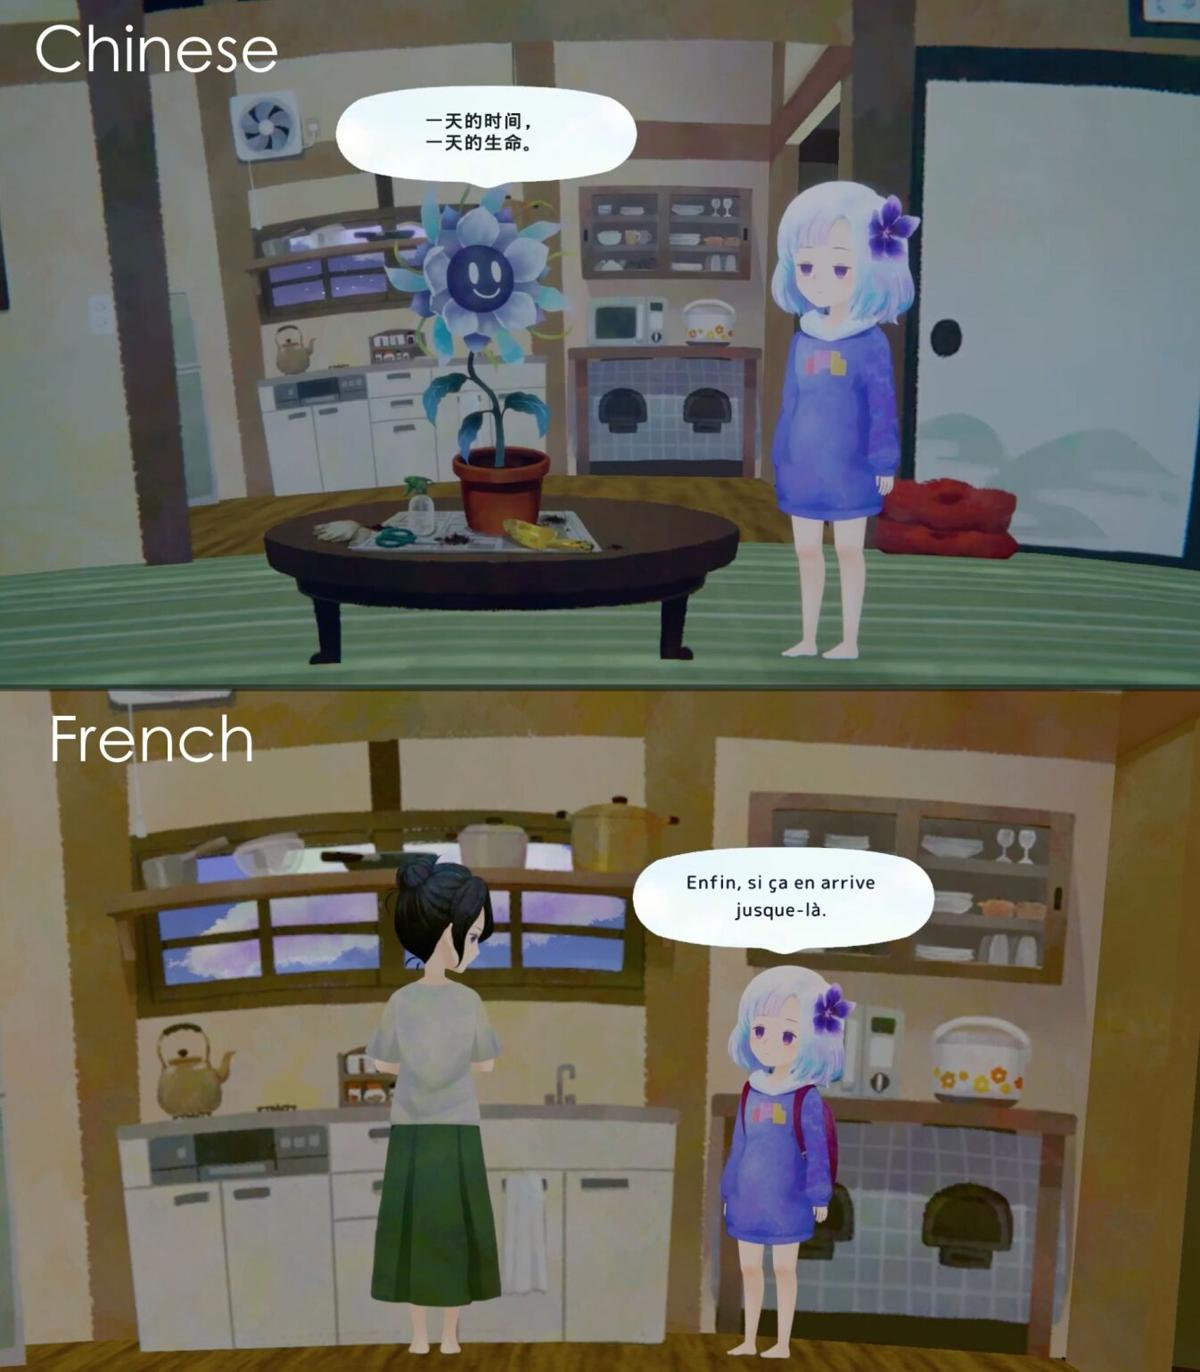 New localizations -- French and Chinese (Traditional and Simplified)